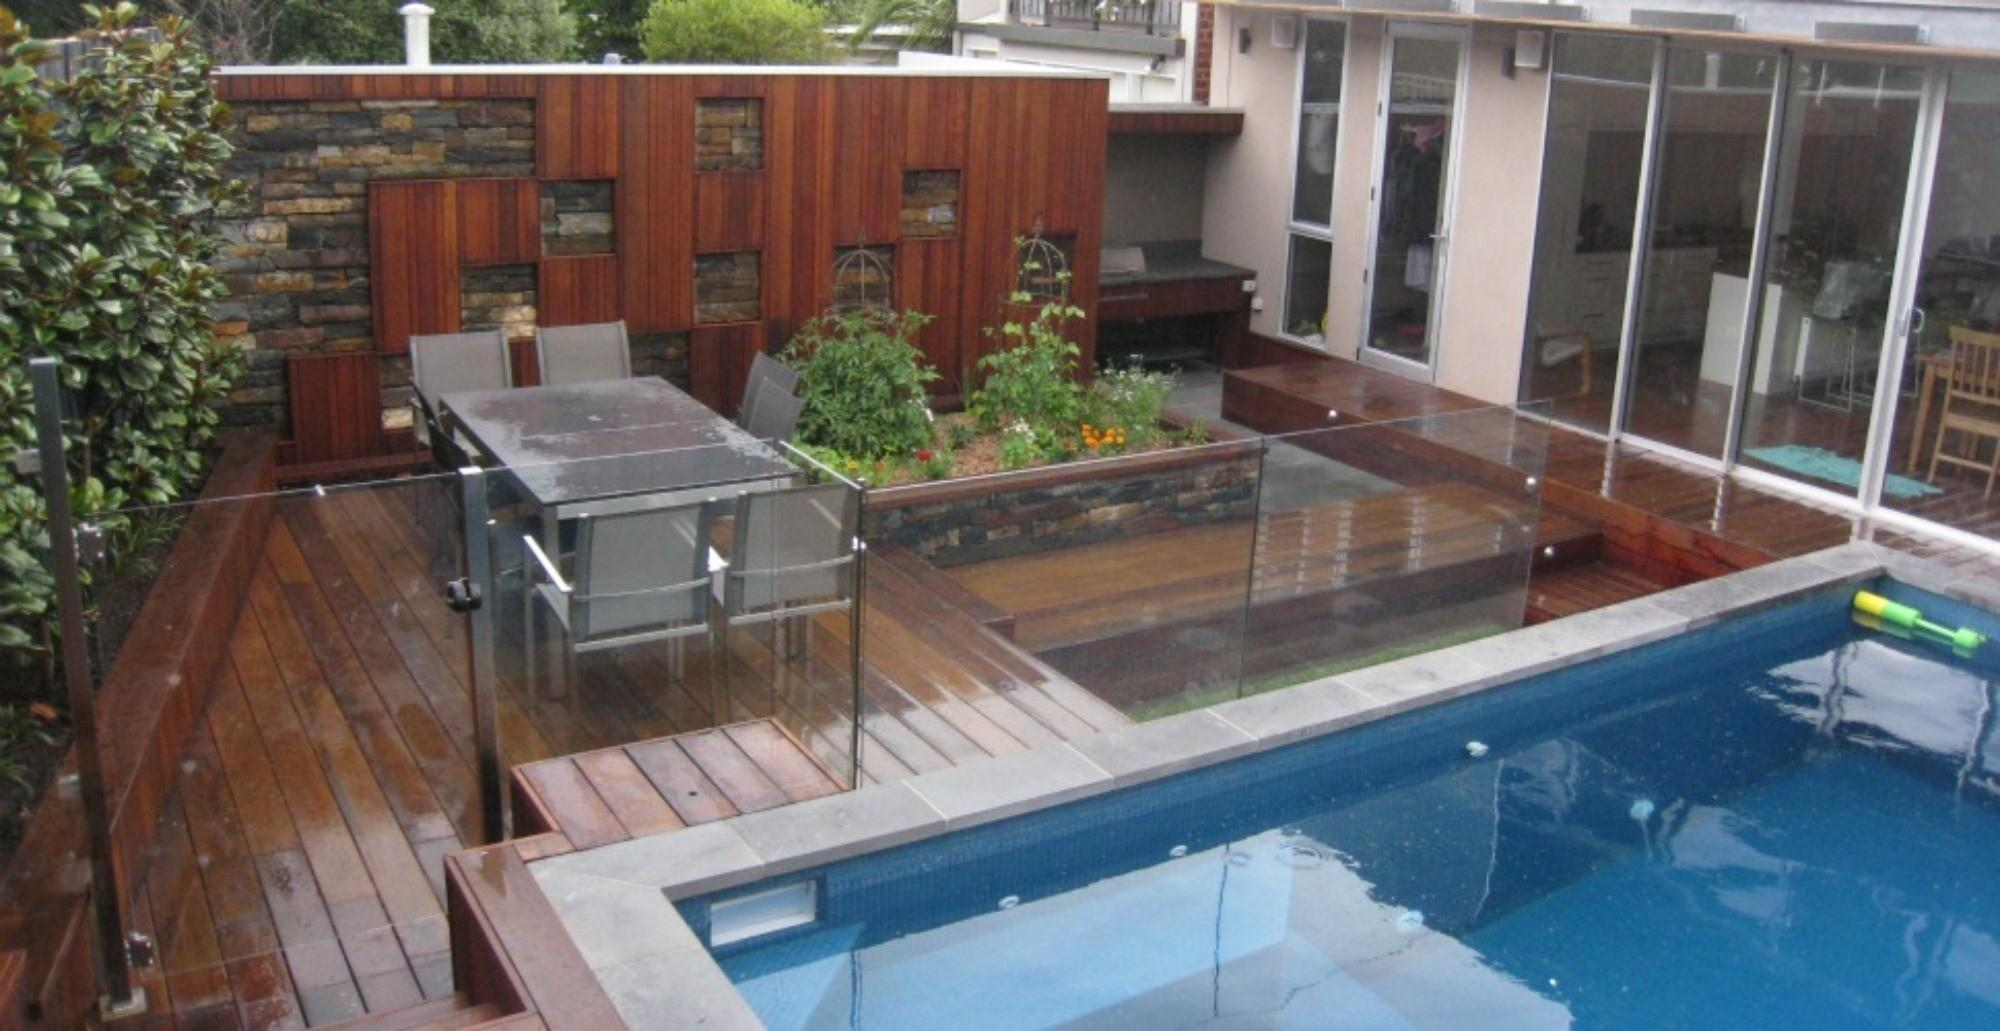 Private Pool Deck Design Your Family Nytexas